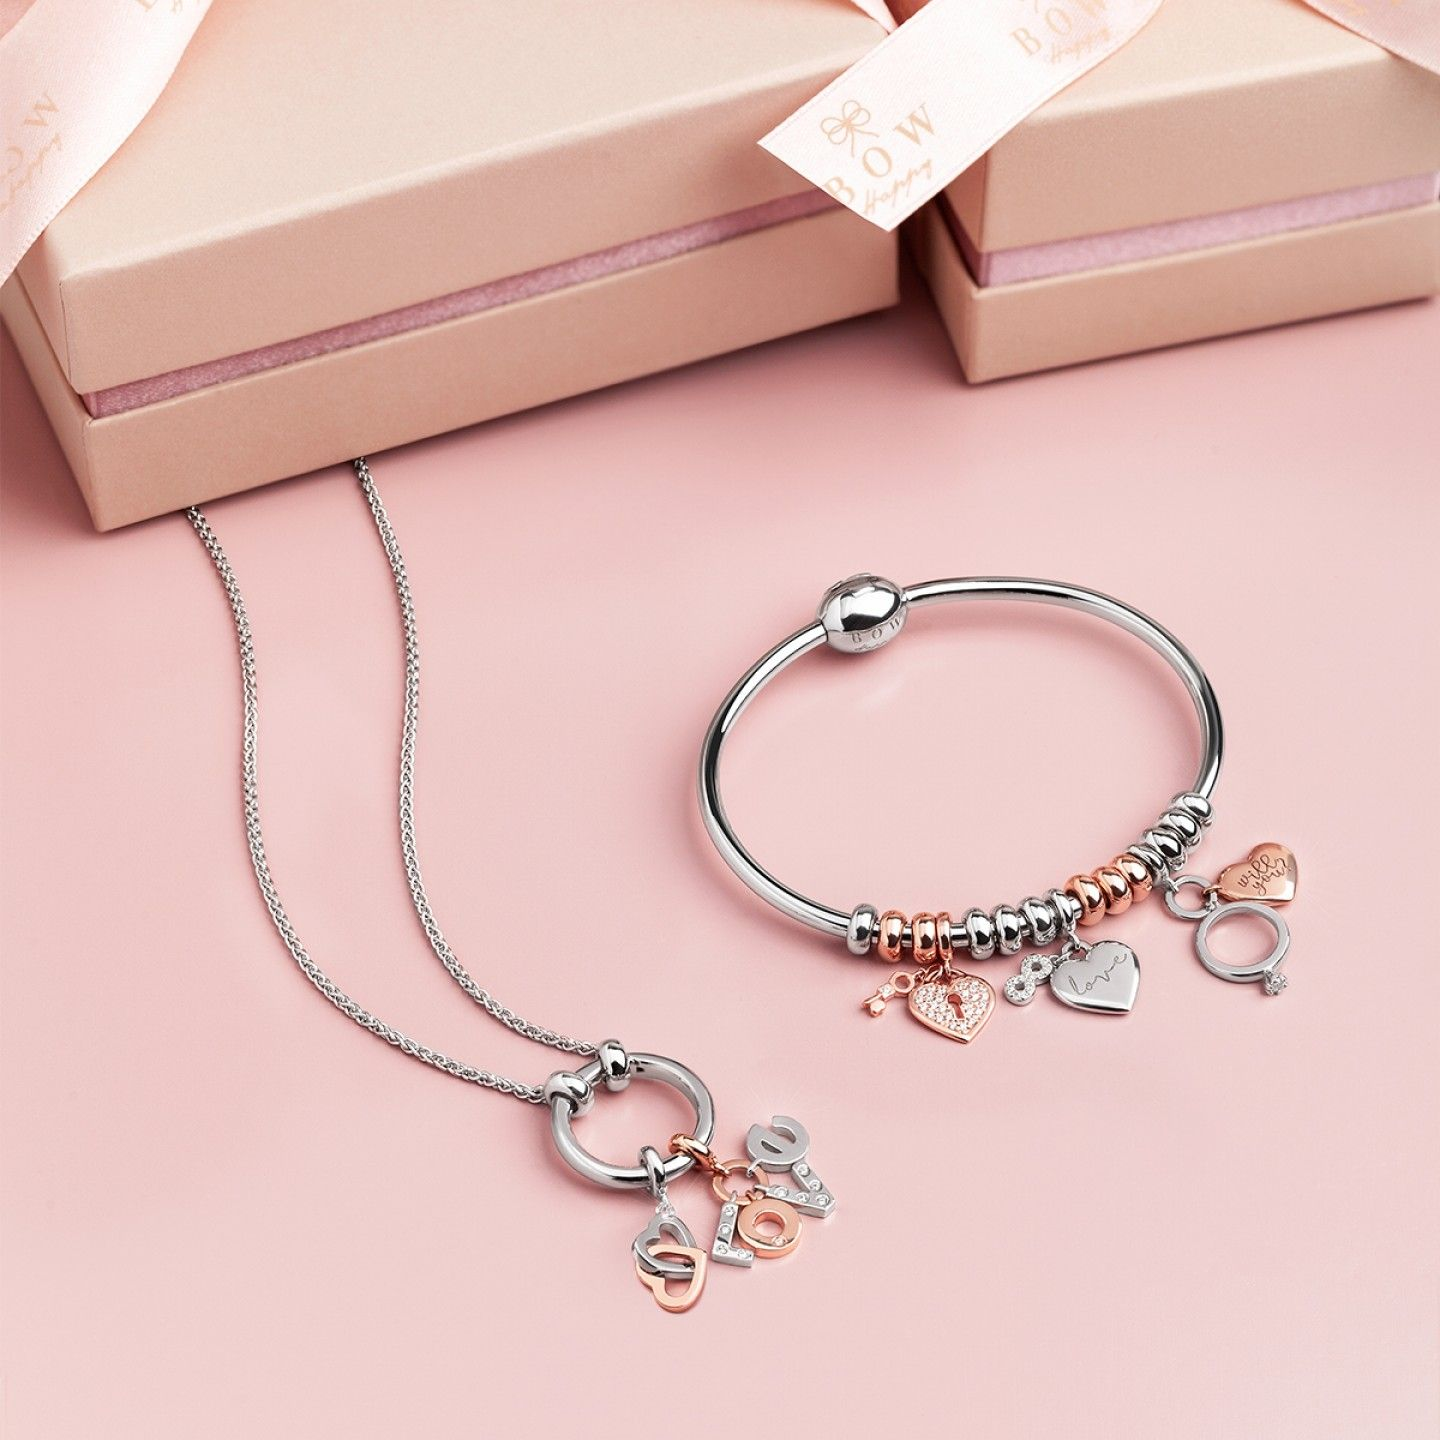 Charm BOW HAPPY Love Stories Connected Heart